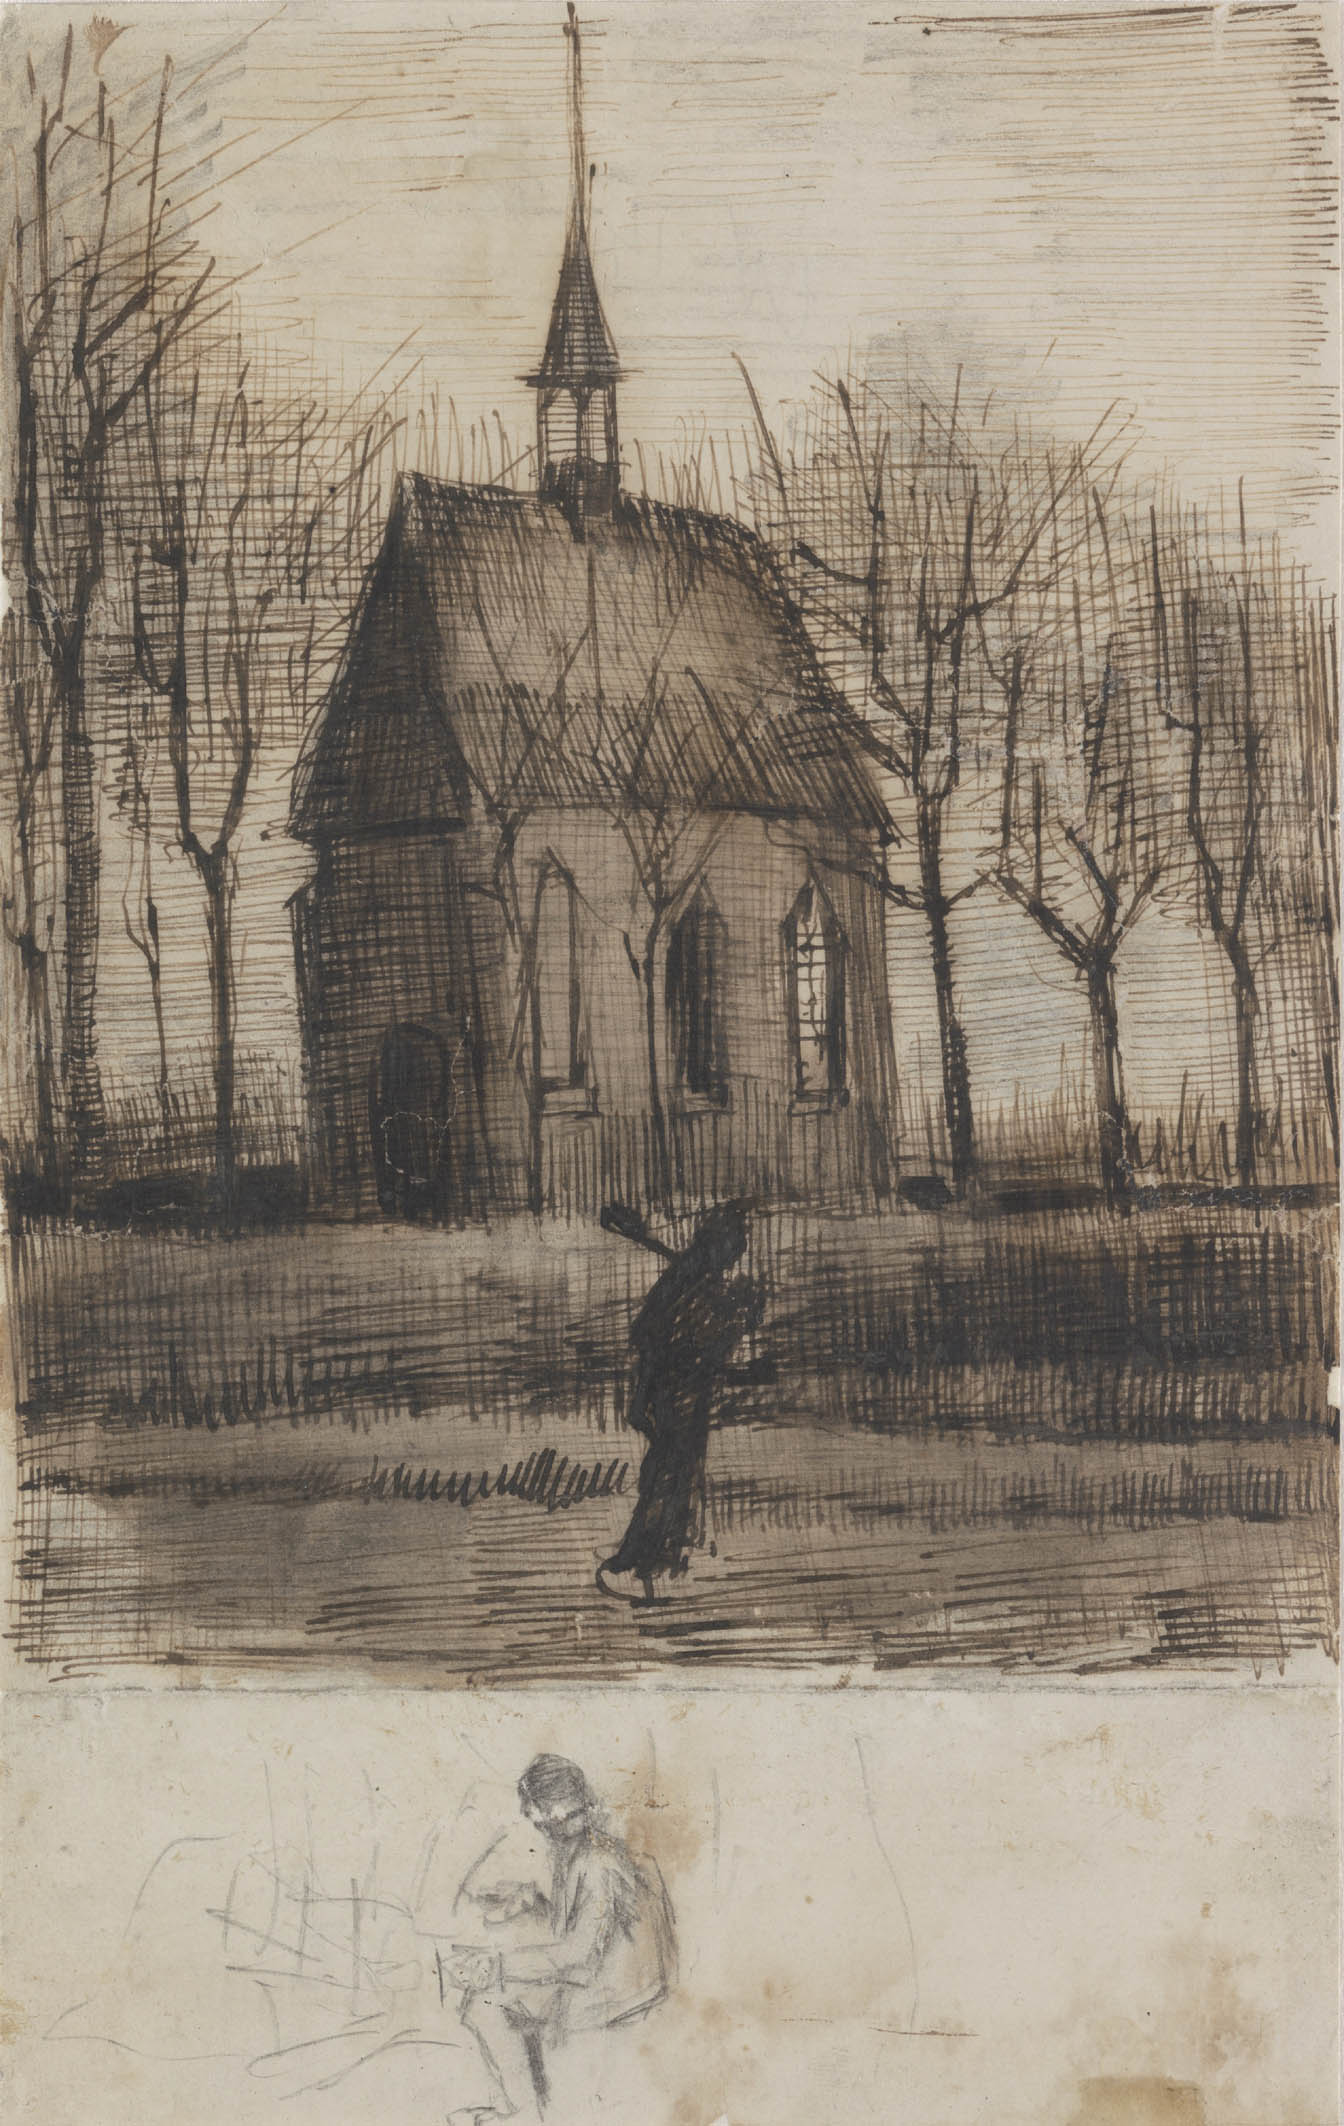 16 - KM 125.492 The Reformed Church at Nuenen, January 1884